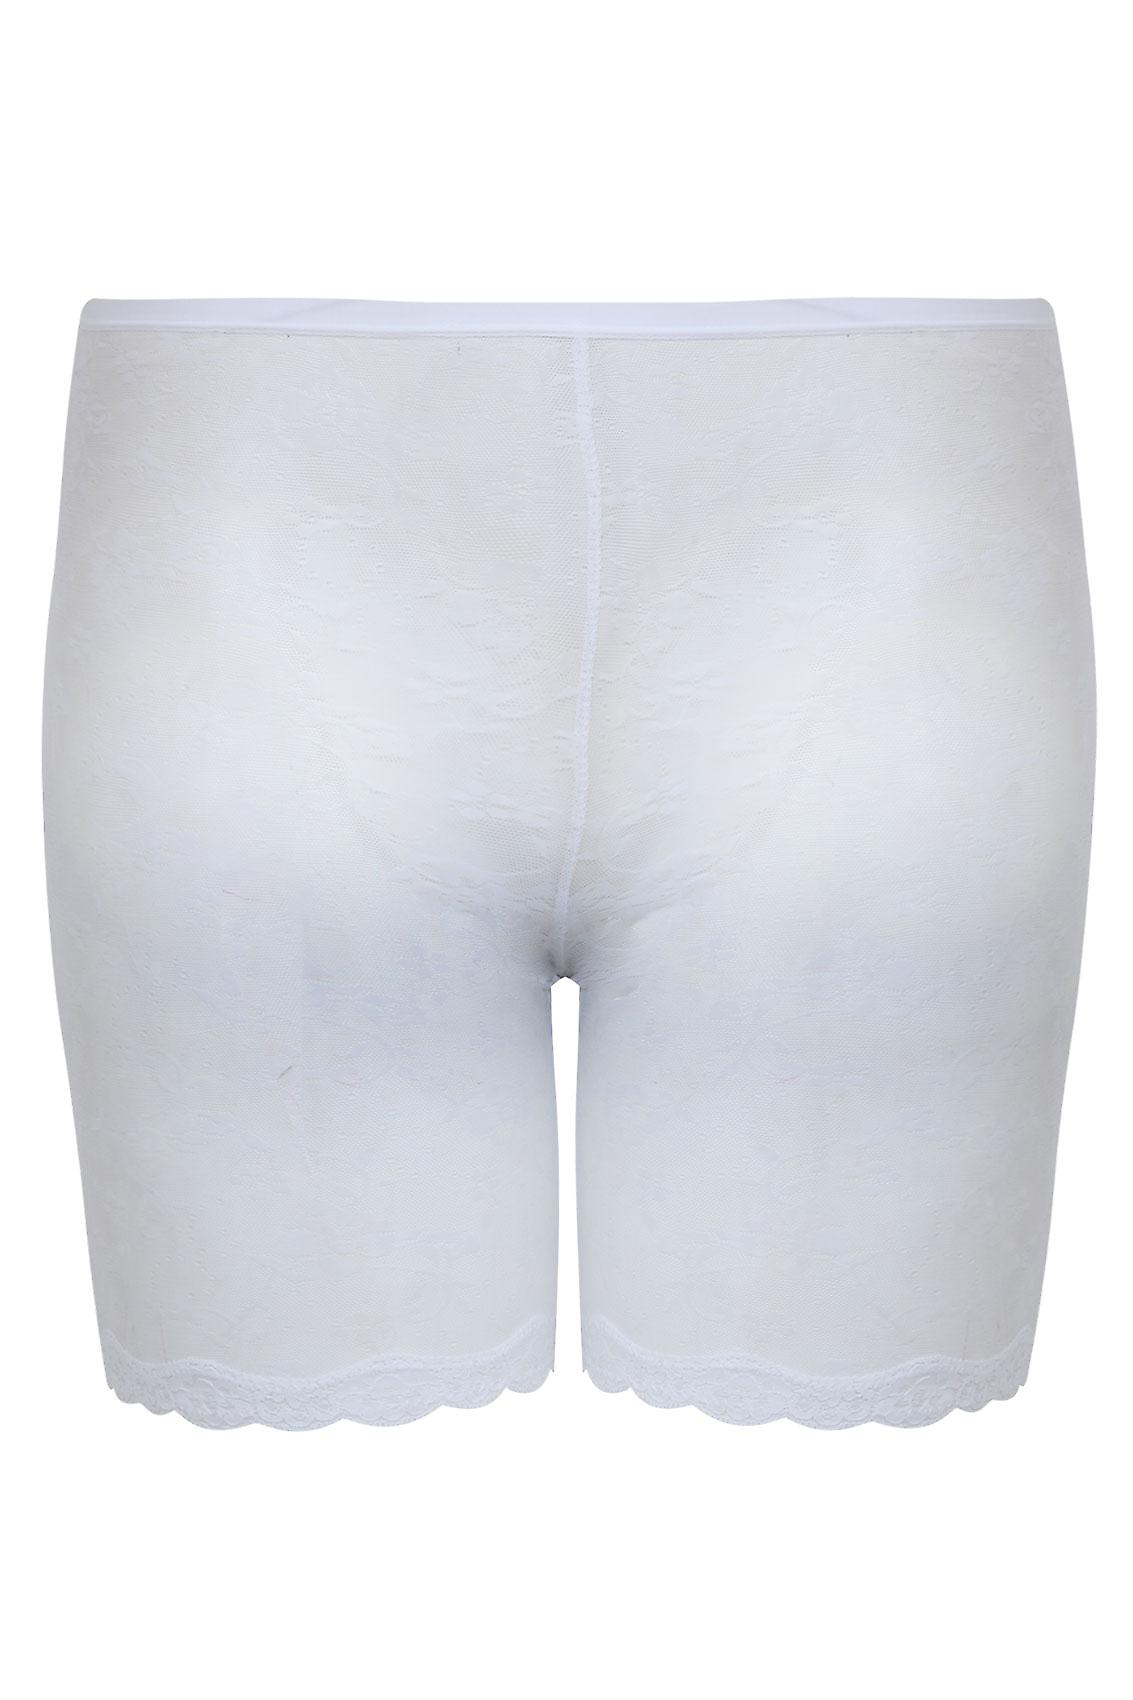 White Lace Mesh Thigh Slimmer